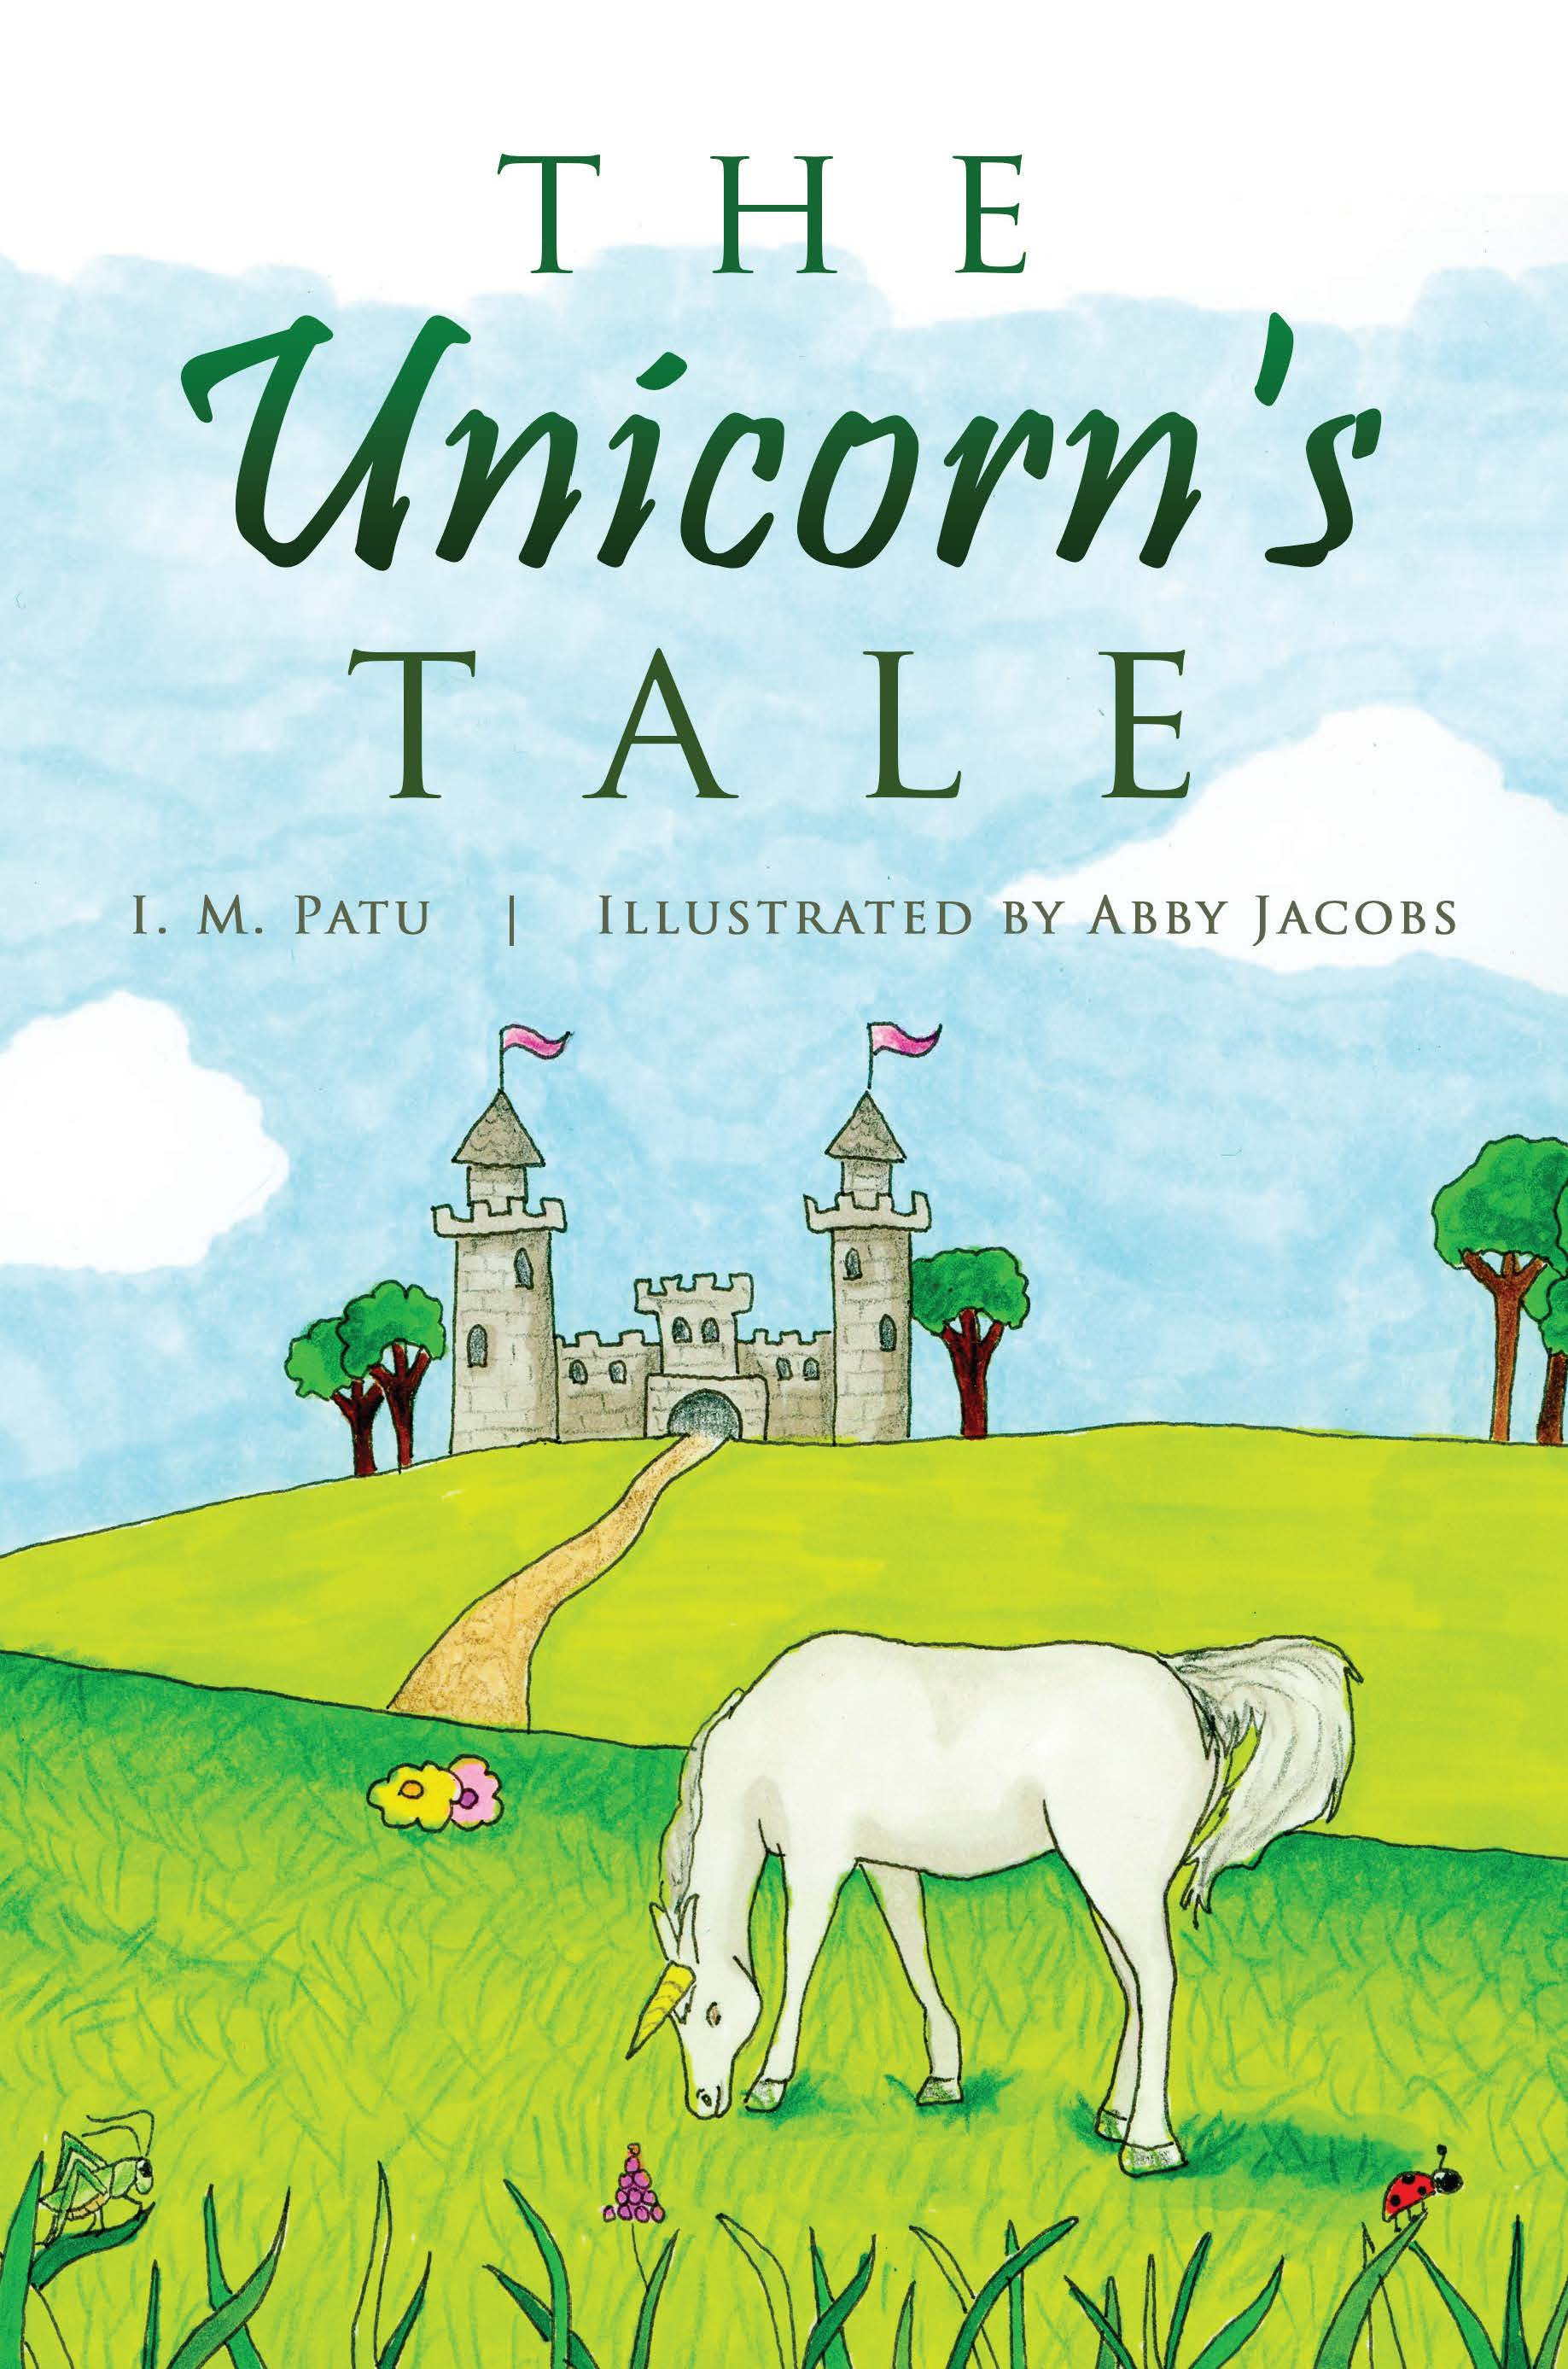 The Unicorn's Tale by I.M. Patu